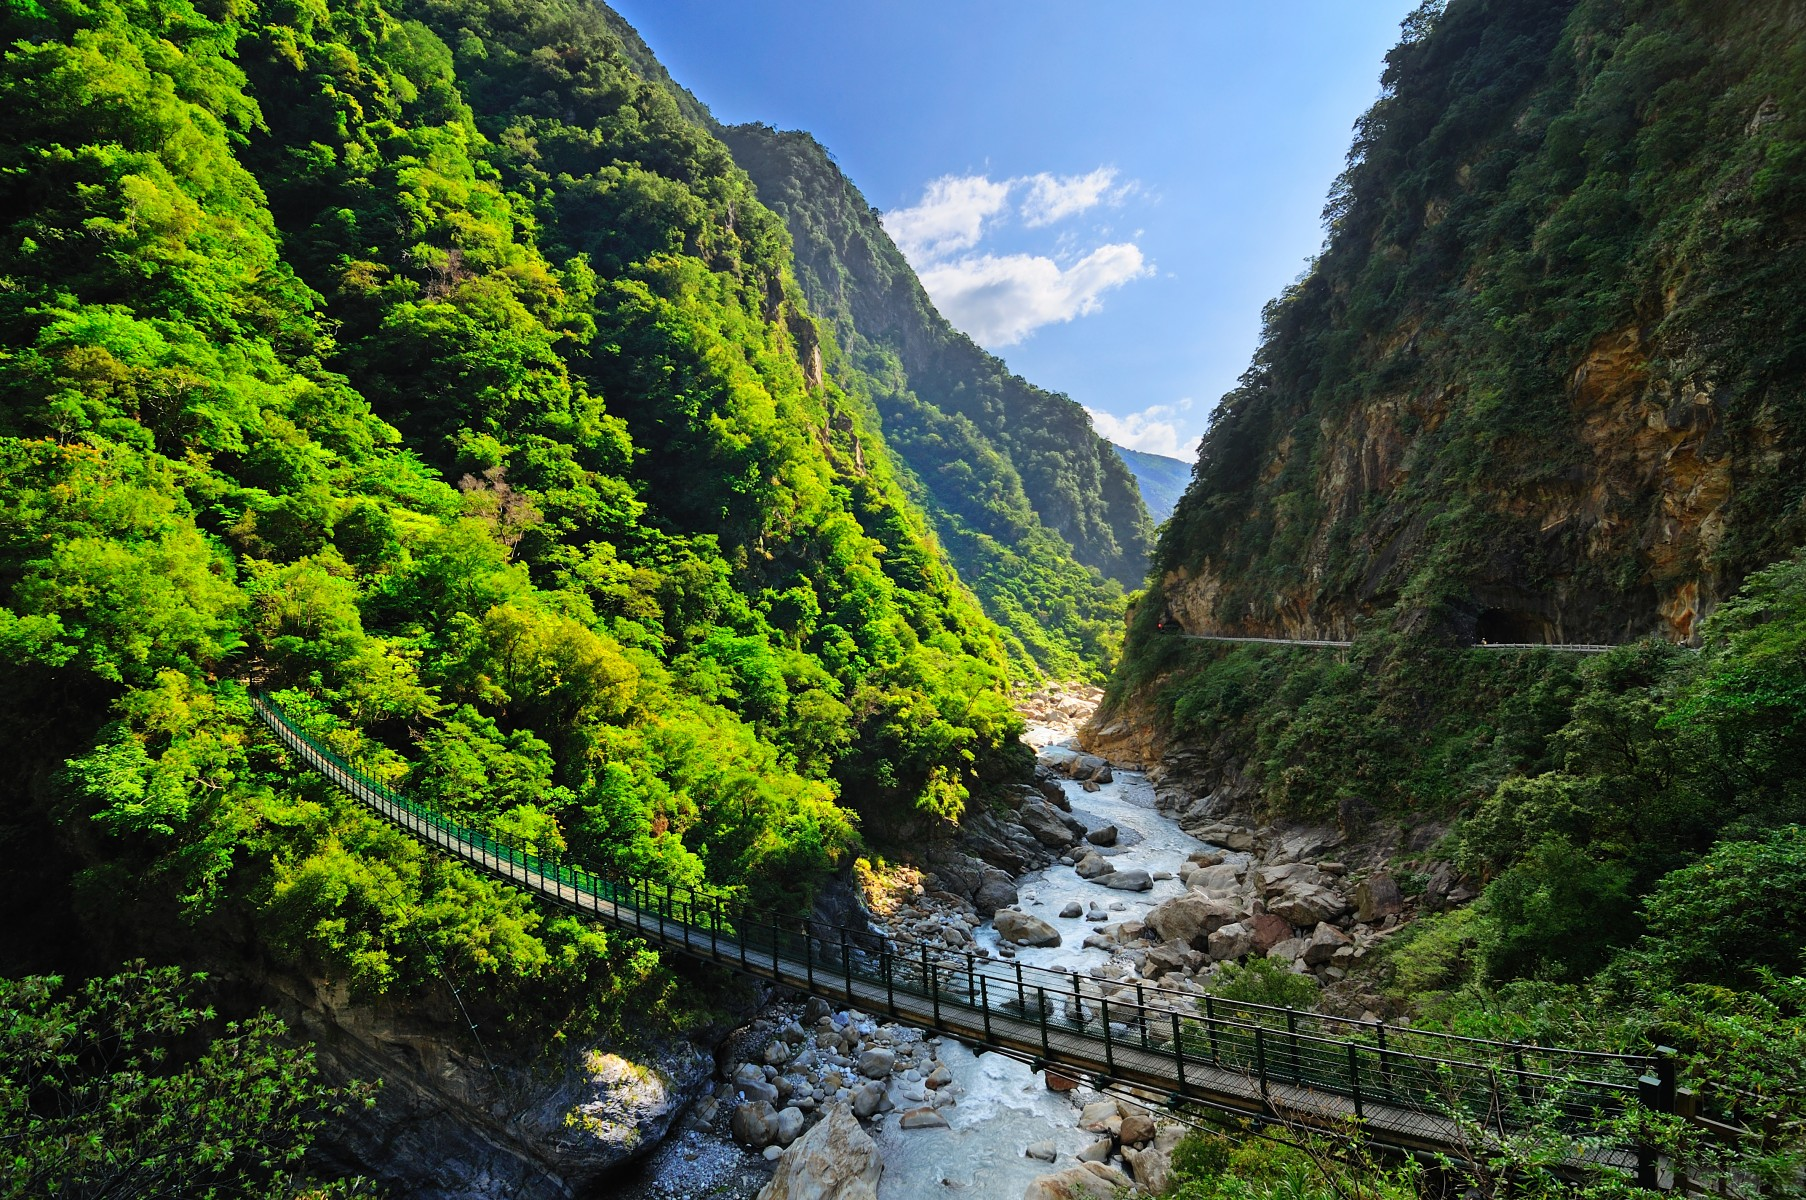 Bridge at Taroko National Park in Hualien, Taiwan